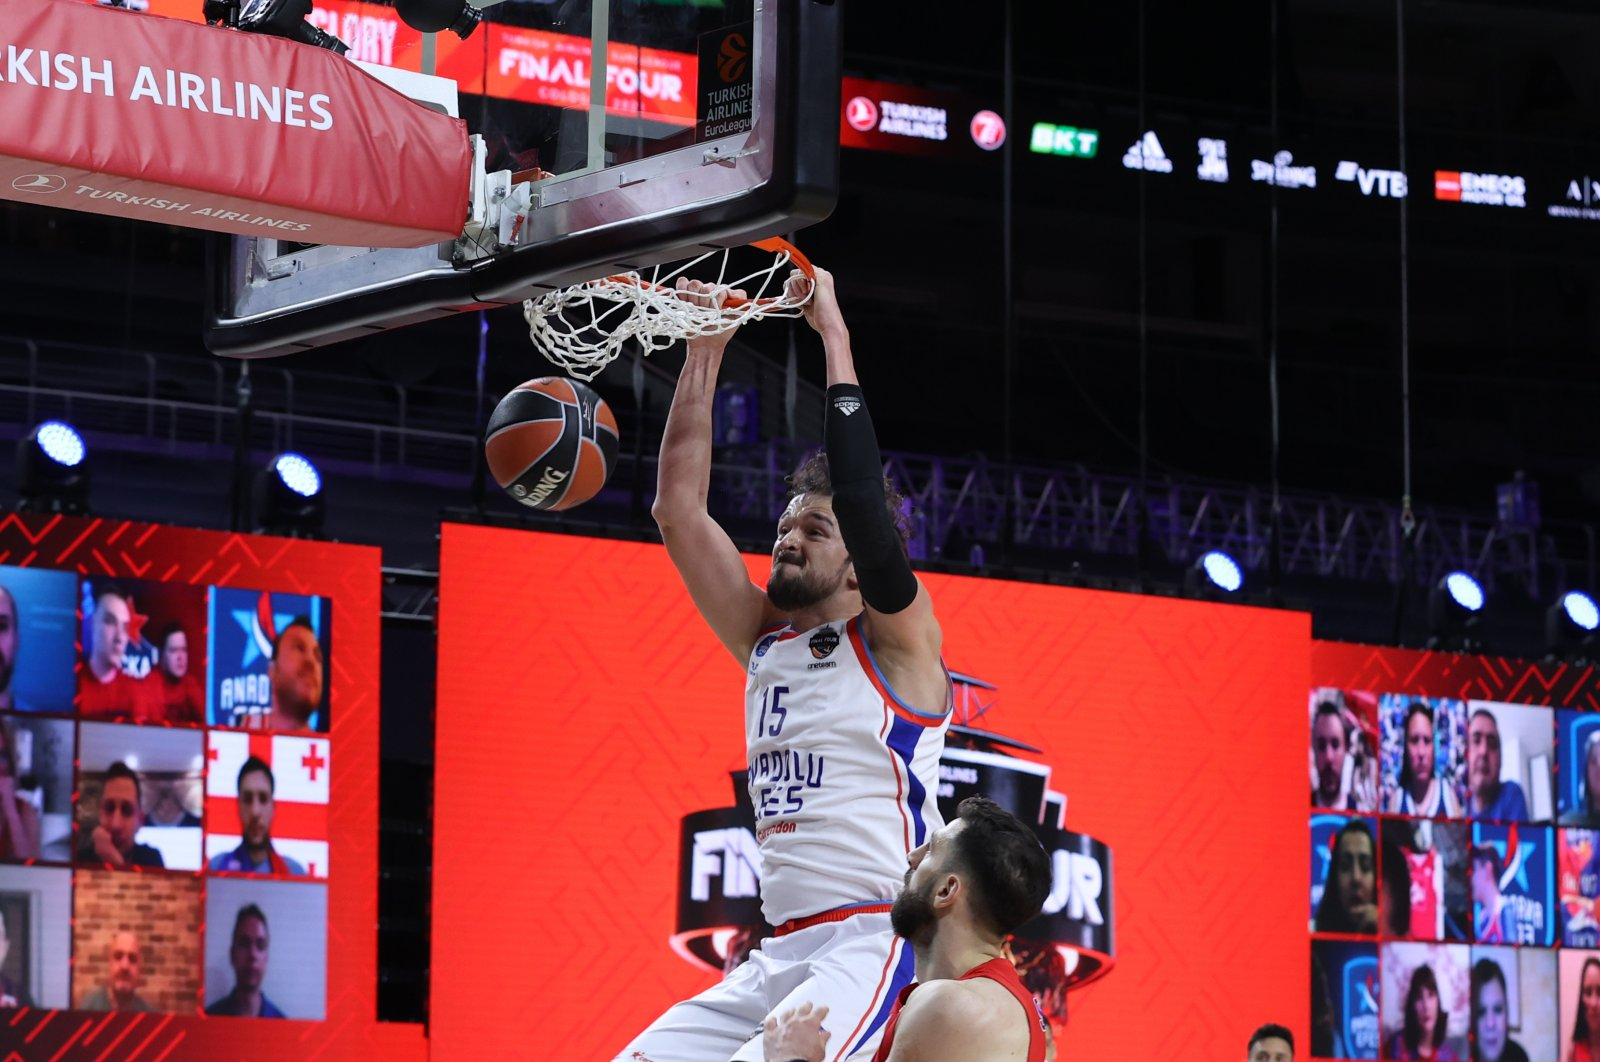 Anadolu Efes' Sertaç Şanlı dunks during the match against CSKA Moscow at the Lanxess Arena in Germany's Cologne on May 28, 2021 (AA Photo)